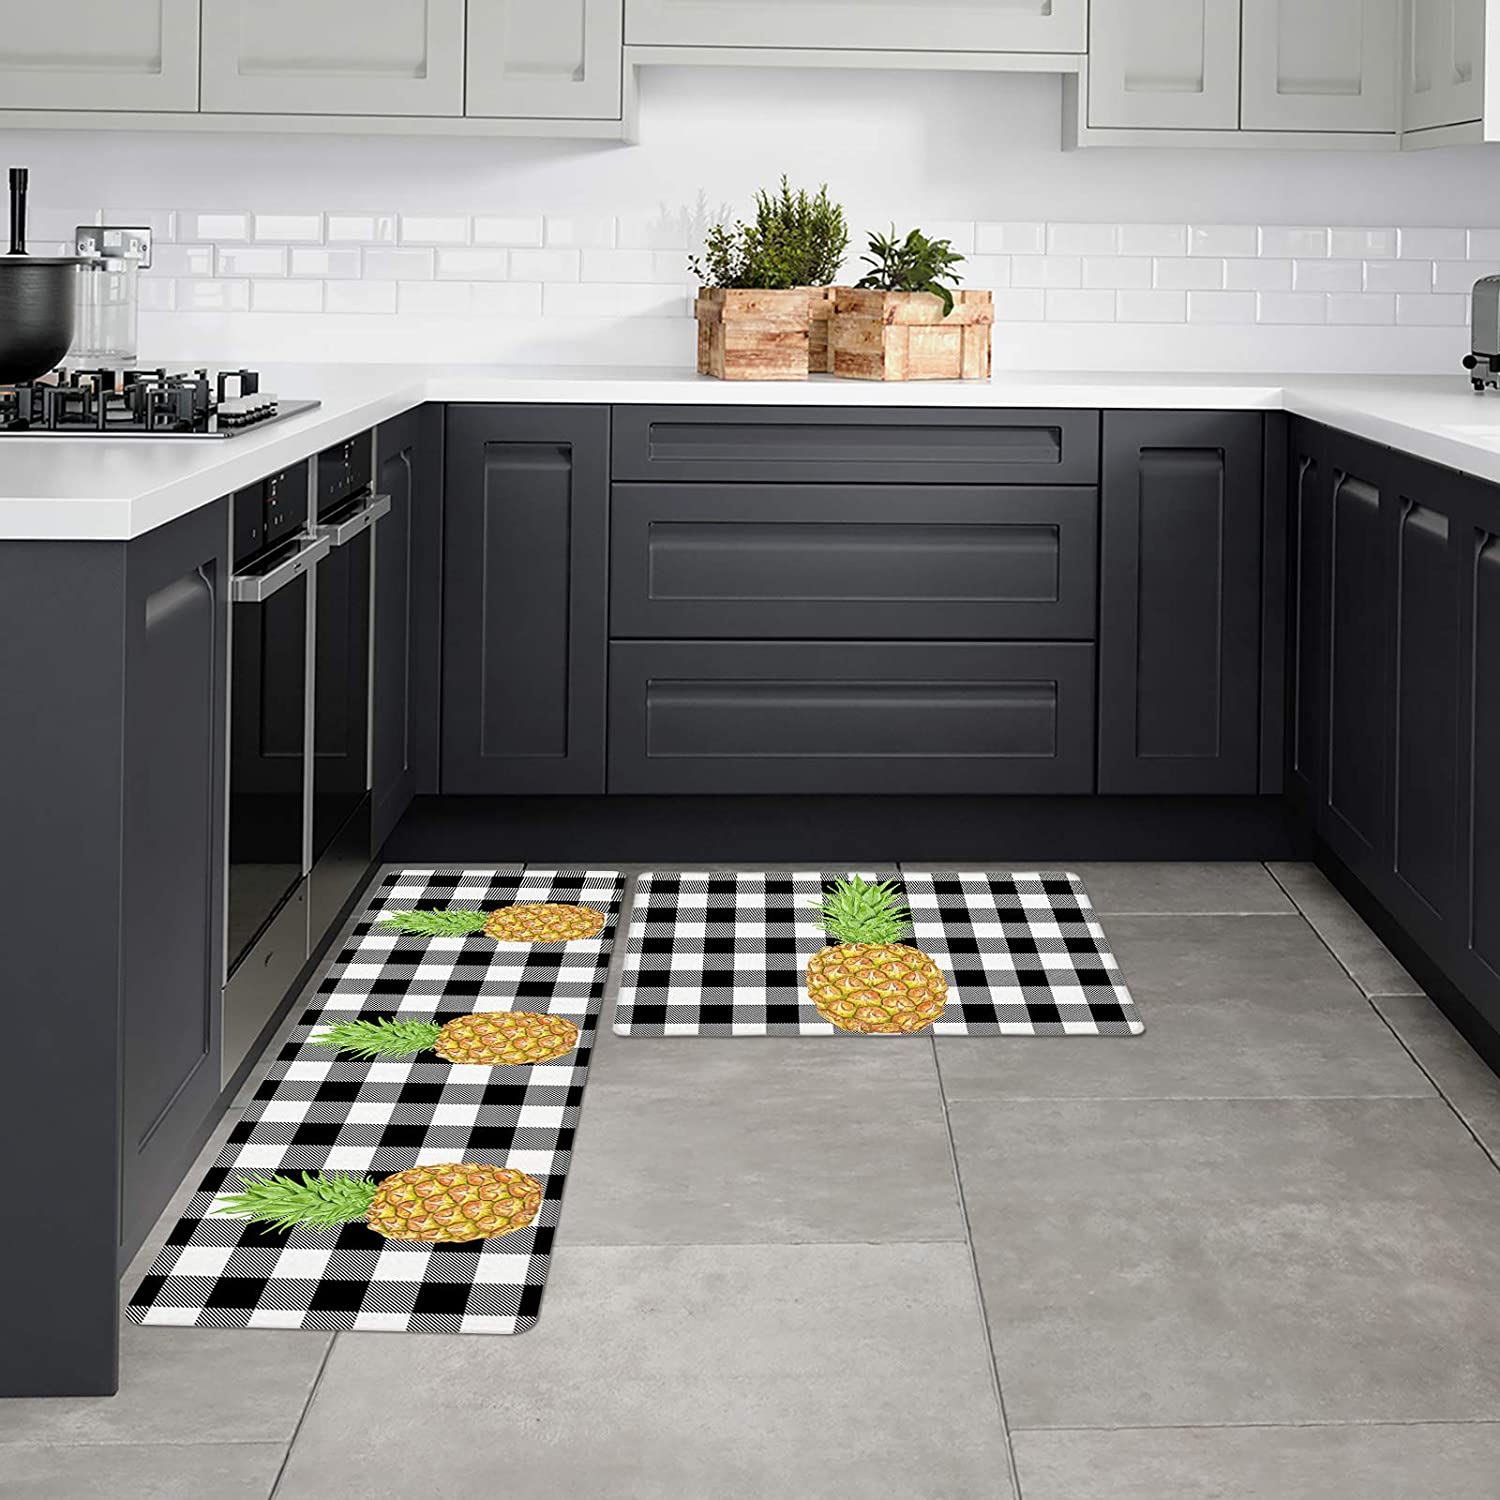 Kitchen Outlet sale feature Mats Branded goods Non-Slip with Rubber Backing Set Rugs 2 A of Pineap